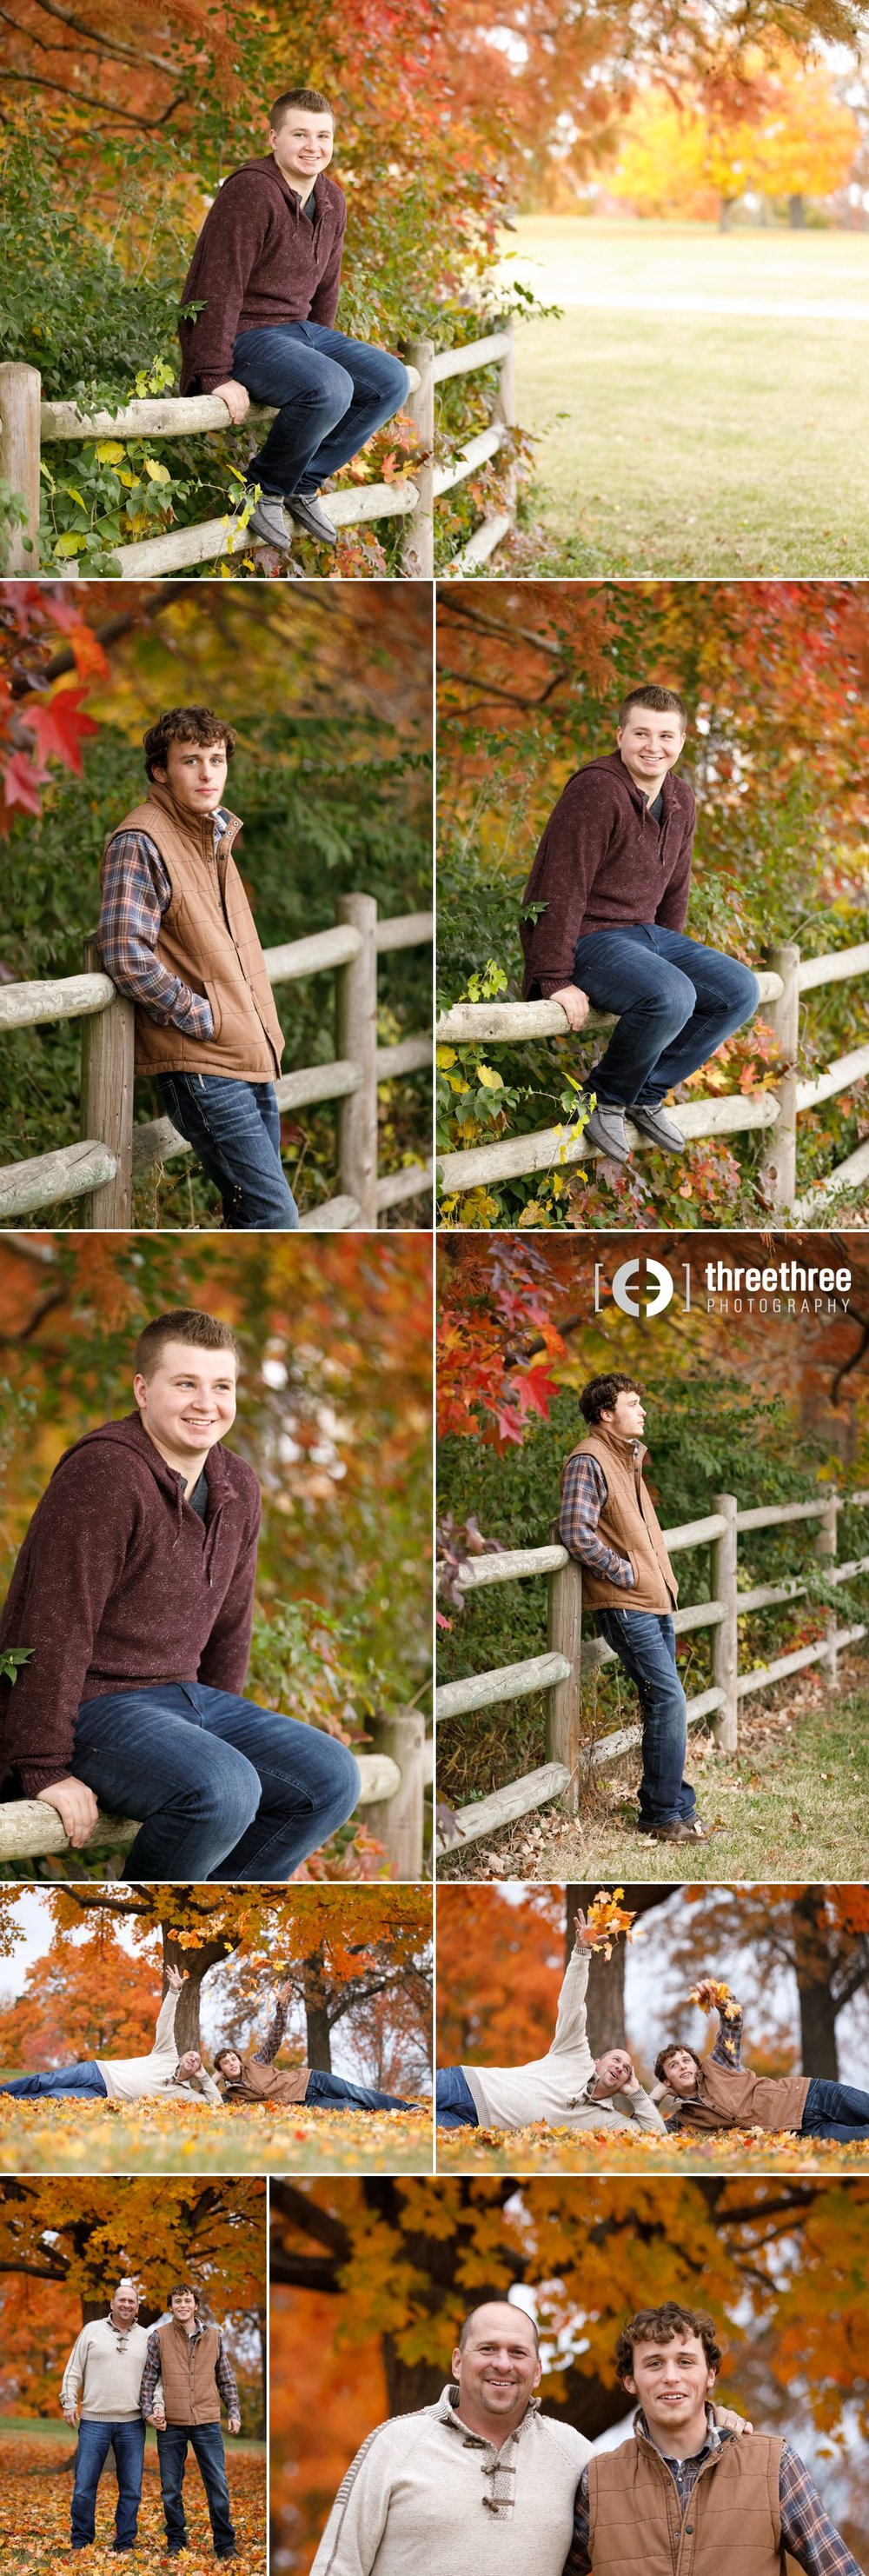 Fall Family Photos 6.jpg